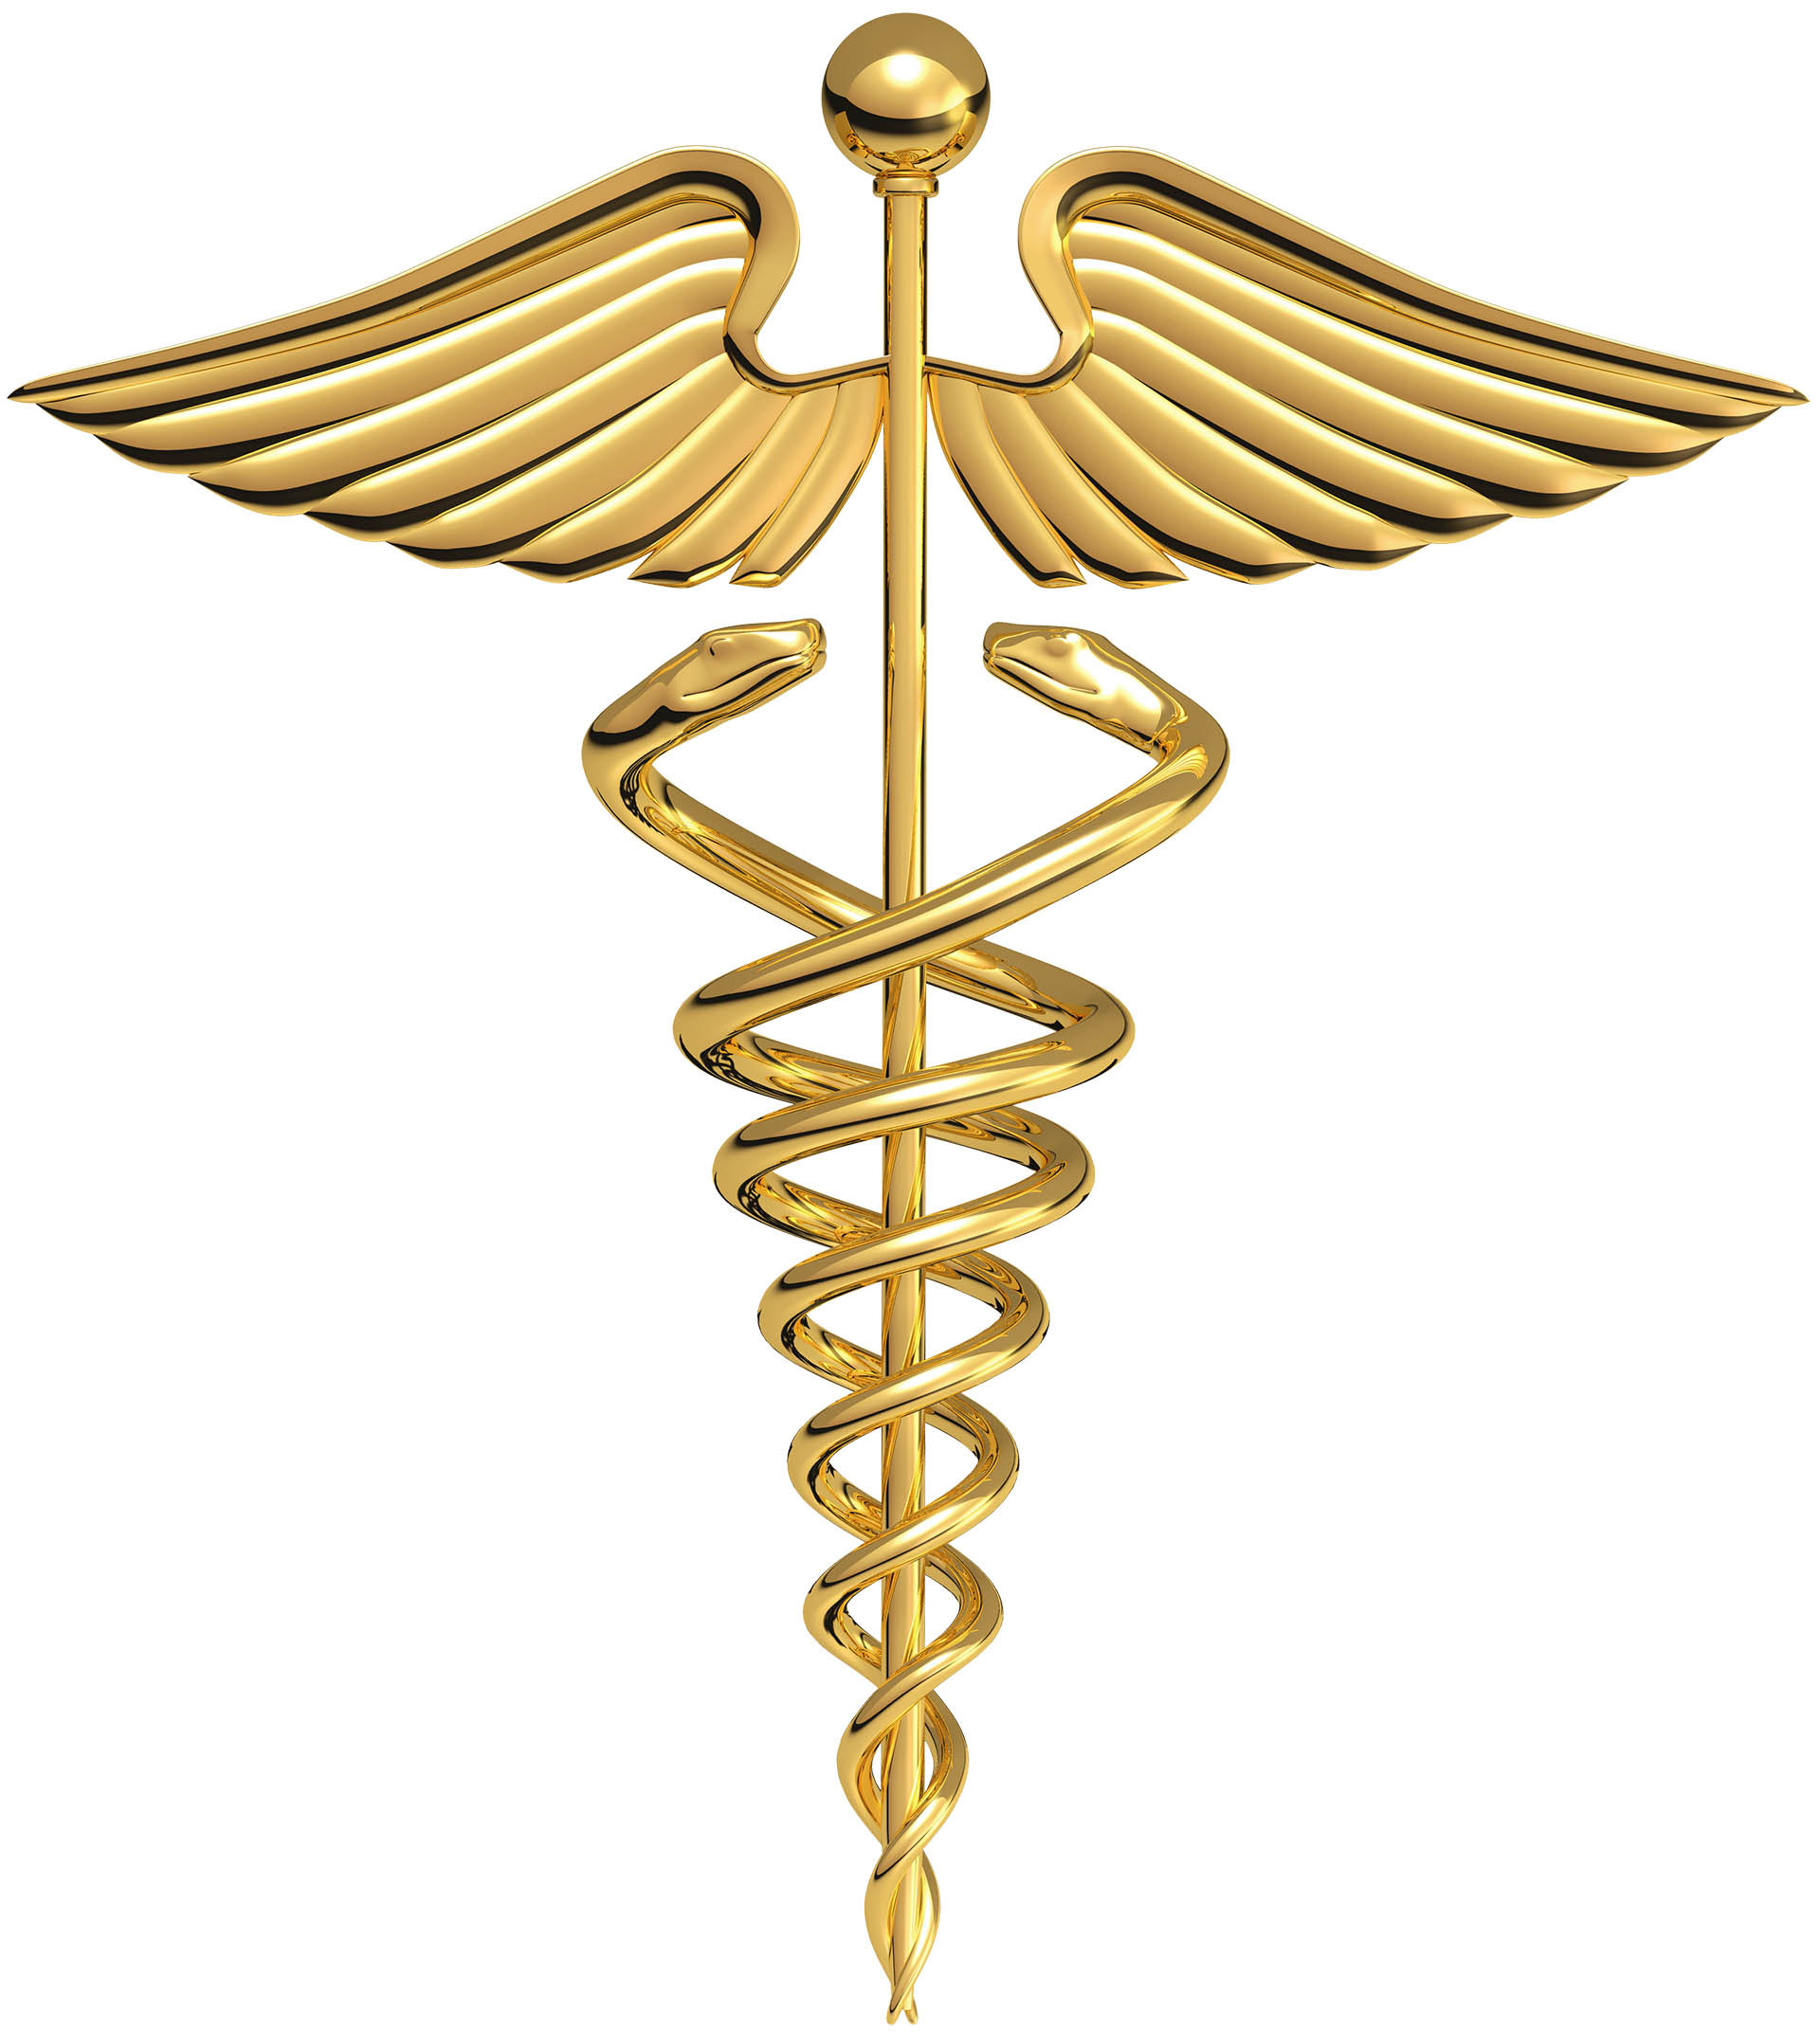 Caduceus - HEALTH - Messenger of the gods - DO NO HARM - FEAR NOT - BE NOT AFRAID - CAUSE NO PAIN - BE AS PAINLESS AS POSSIBLE - CAUSE NO FEAR - DO NOT BE SCARY - USE BIRTH CONTROL - PERMIT DIVORCE - DO NOT PUNISH - DO NOT MAKE THREATS - DO NOT BE COERCIVE - BE PERMISSIVE - BE TOLERANT - FREE UNIVERSAL HEALTH CARE